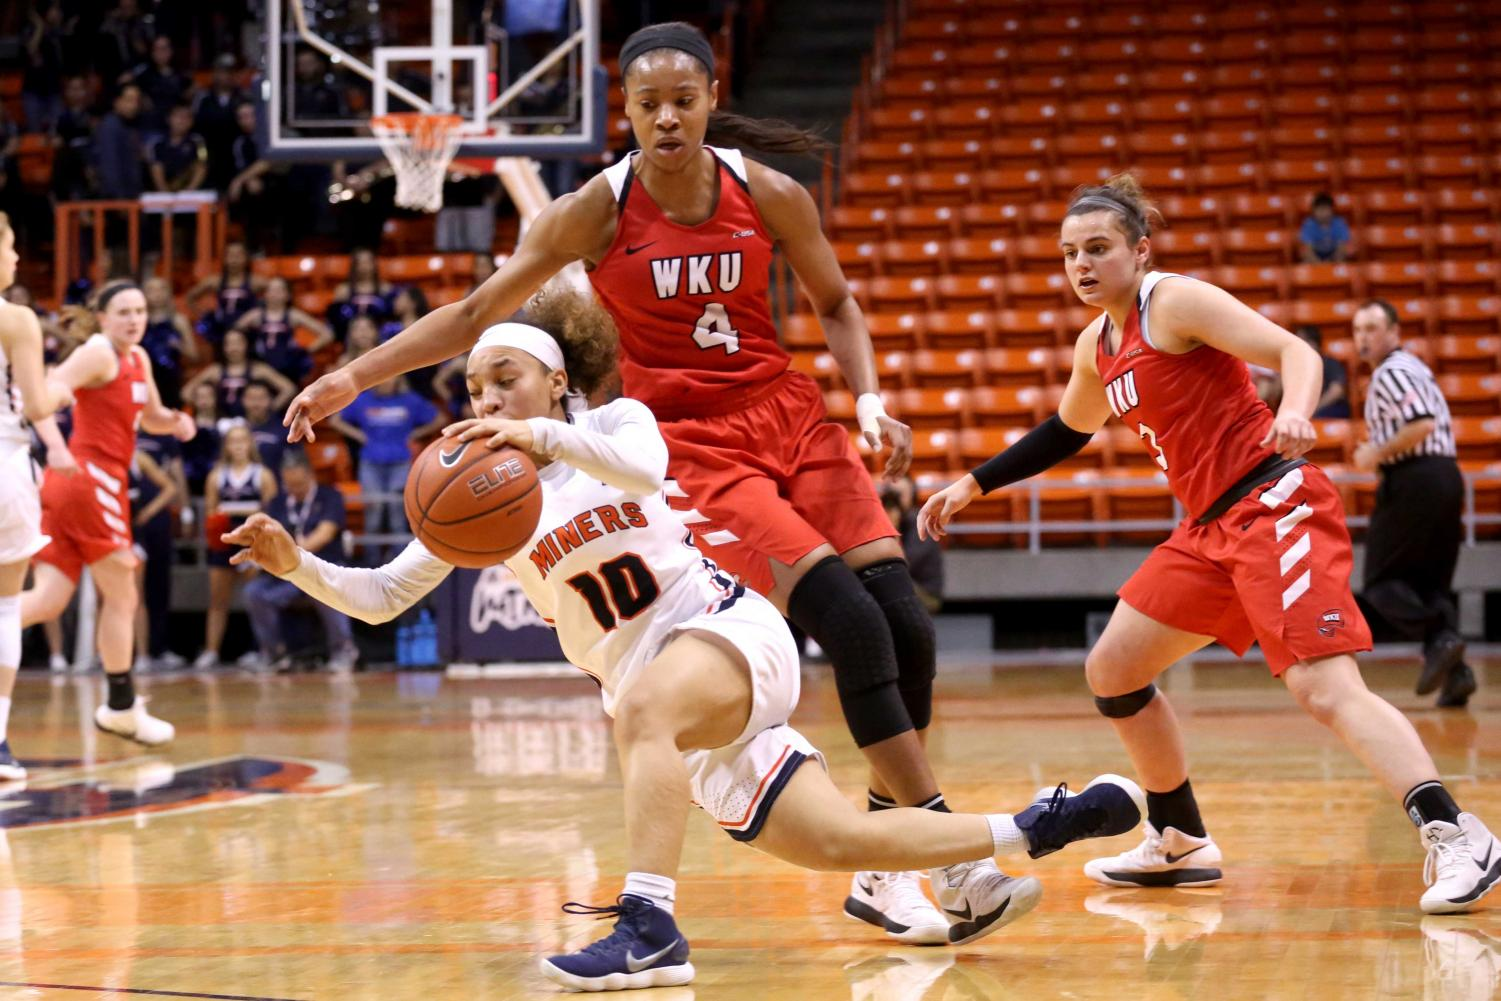 Sophomore+guard+Faith+Cook+is+tripped+by+WKU%27s+Dee+Givens+on+Saturday%2C+March+3+at+the+Don+Haskins+Center.